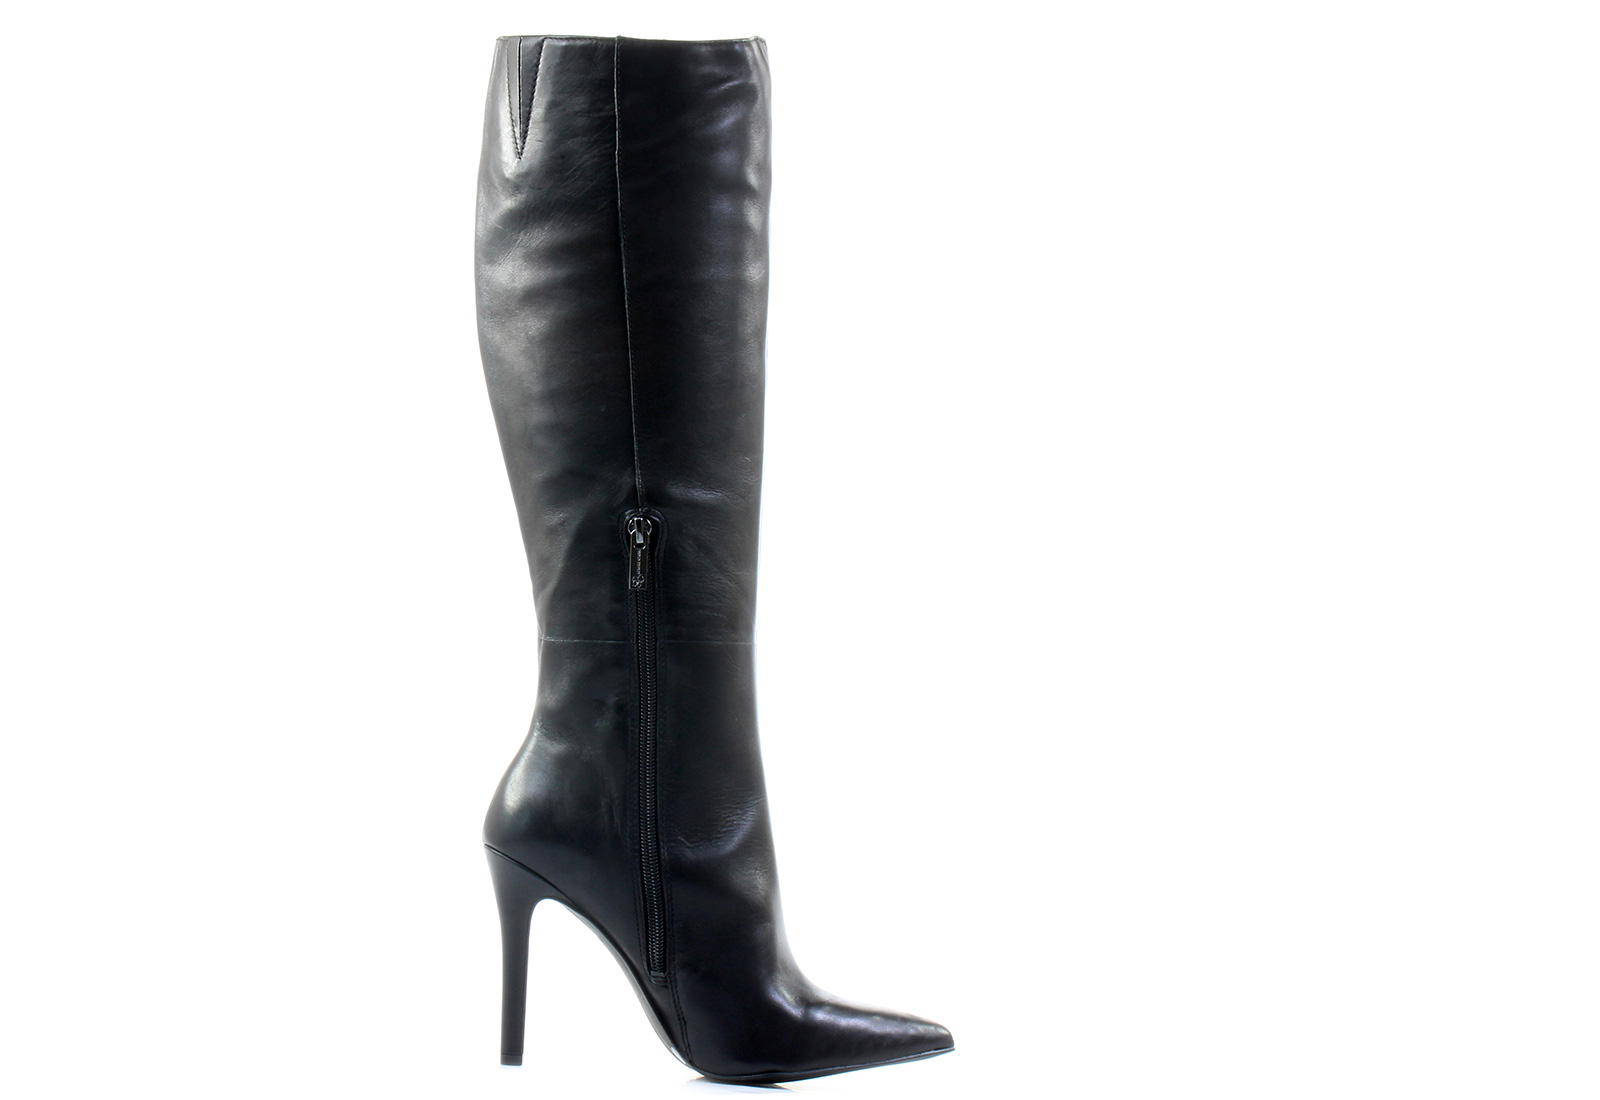 5e31ee6ace8 Jessica Simpson Boots - Capitani - capitani-blk - Online shop for sneakers,  shoes and boots